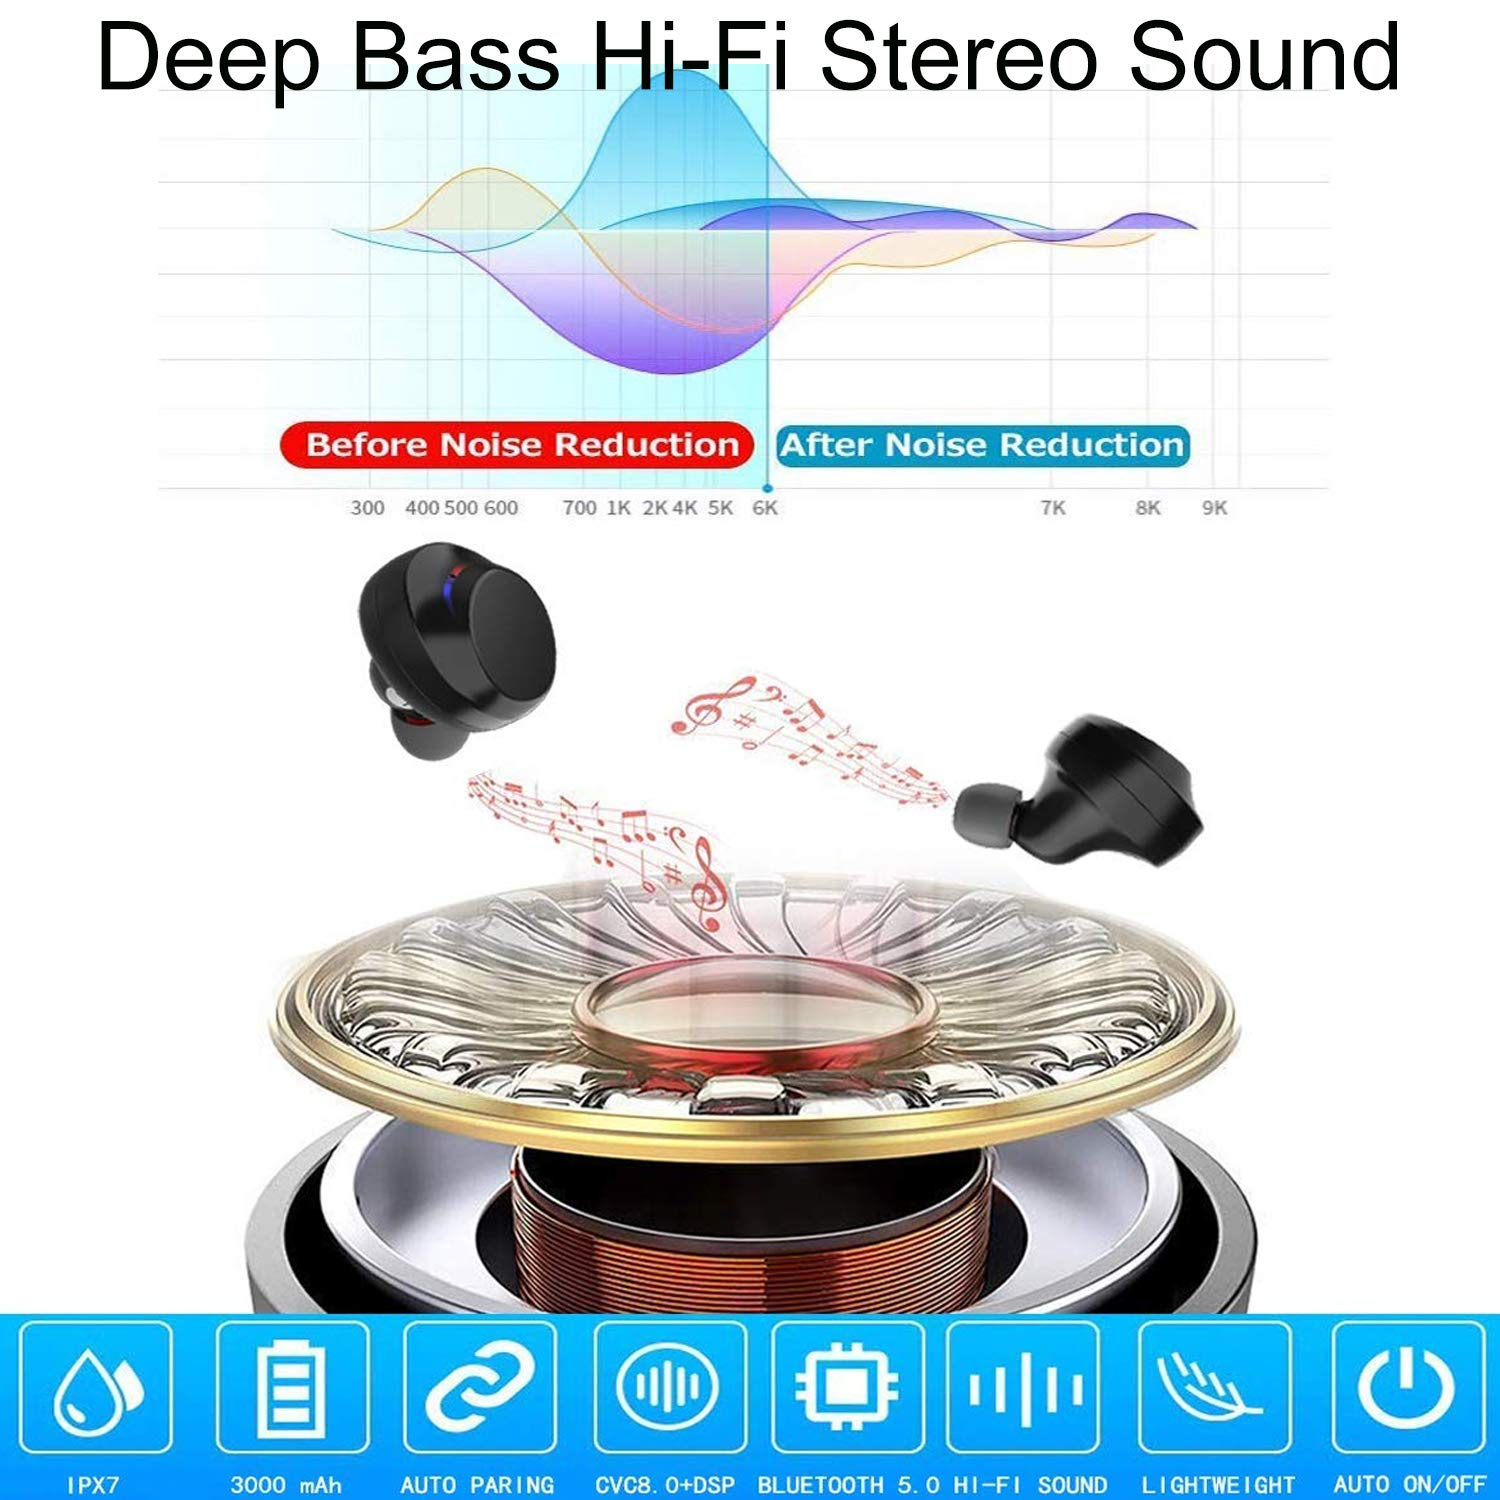 Wireless Earbuds,AUPAI Upgraded 5.0 Bluetooth Headphones, True Wireless Stereo IPX7 Waterproof Deep Bass Hi-Fi Sound in-Ear Built-in Mic Headset with 3000 mAh Charging Box 6 Hours Long Play Time